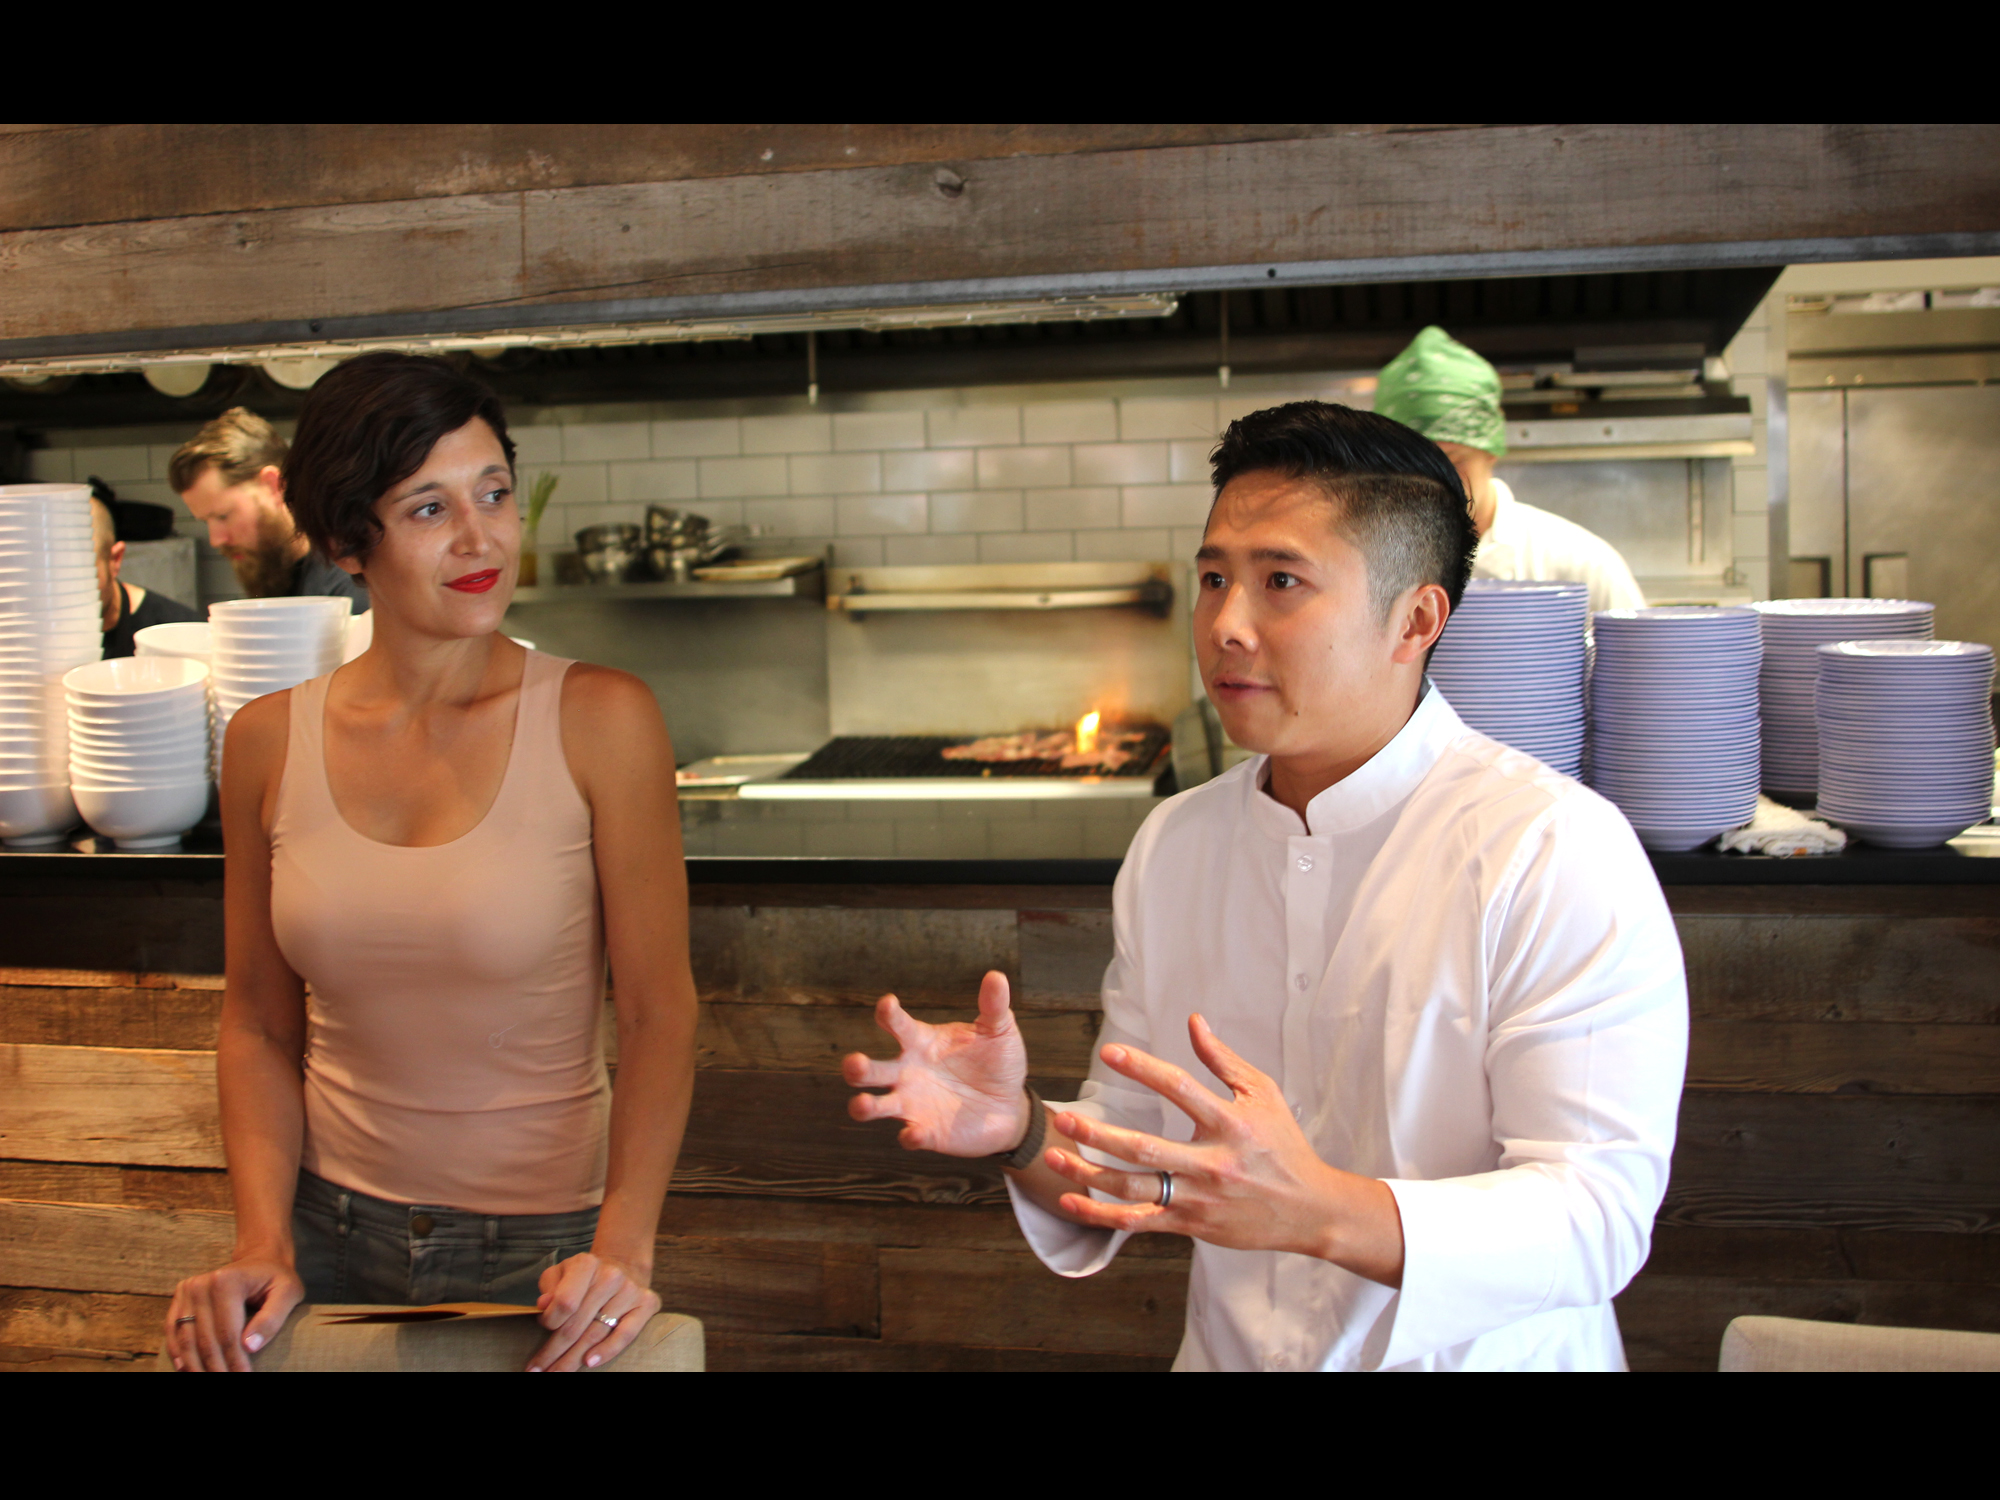 BEHIND THE SCENES WITH REFINED VIETNAMESE FLAVORS AT HAISOUS